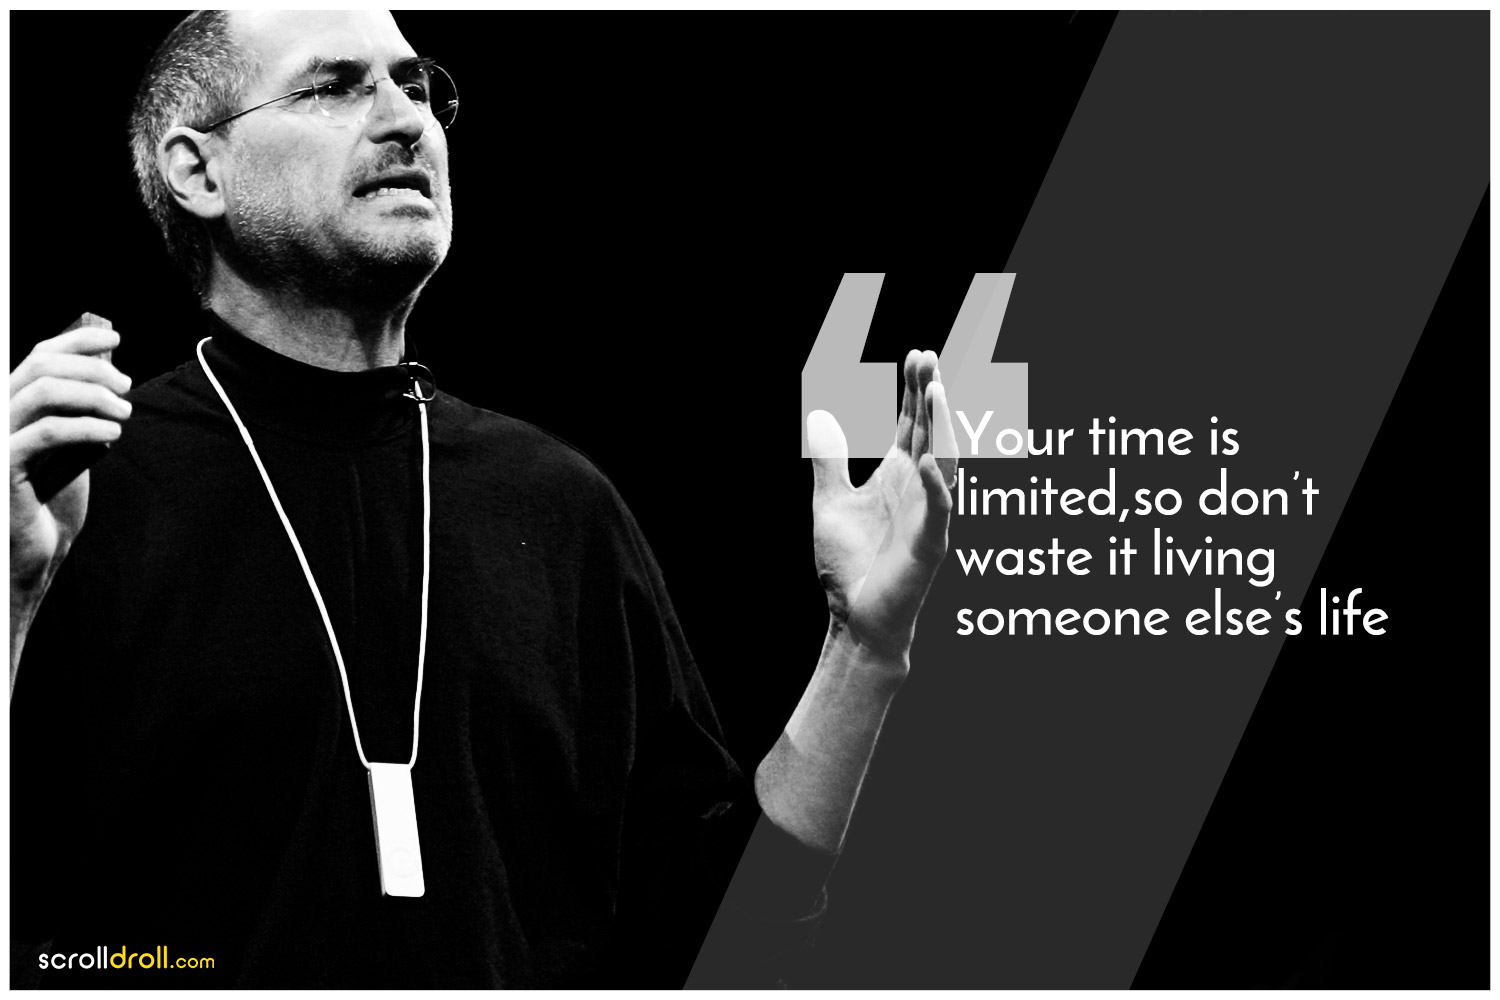 -Steve Jobs Quotes-Your time is limited, so don't waste it living someone else's life